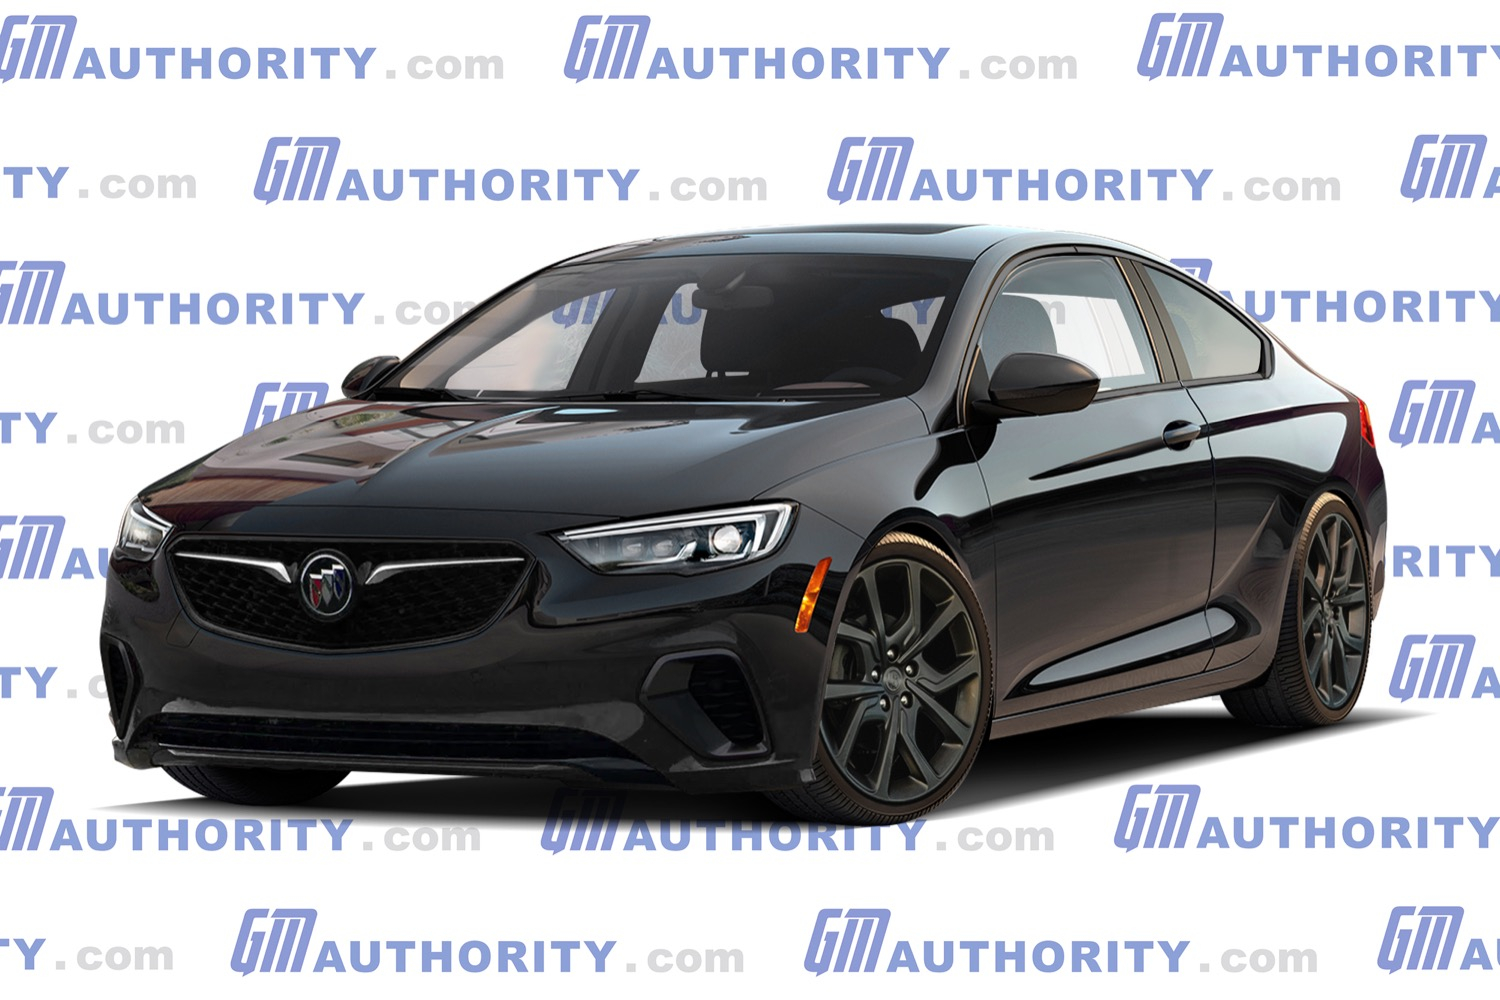 Modern Buick Regal Gnx Rendered | Gm Authority Will There Be A 2022 Buick Regal